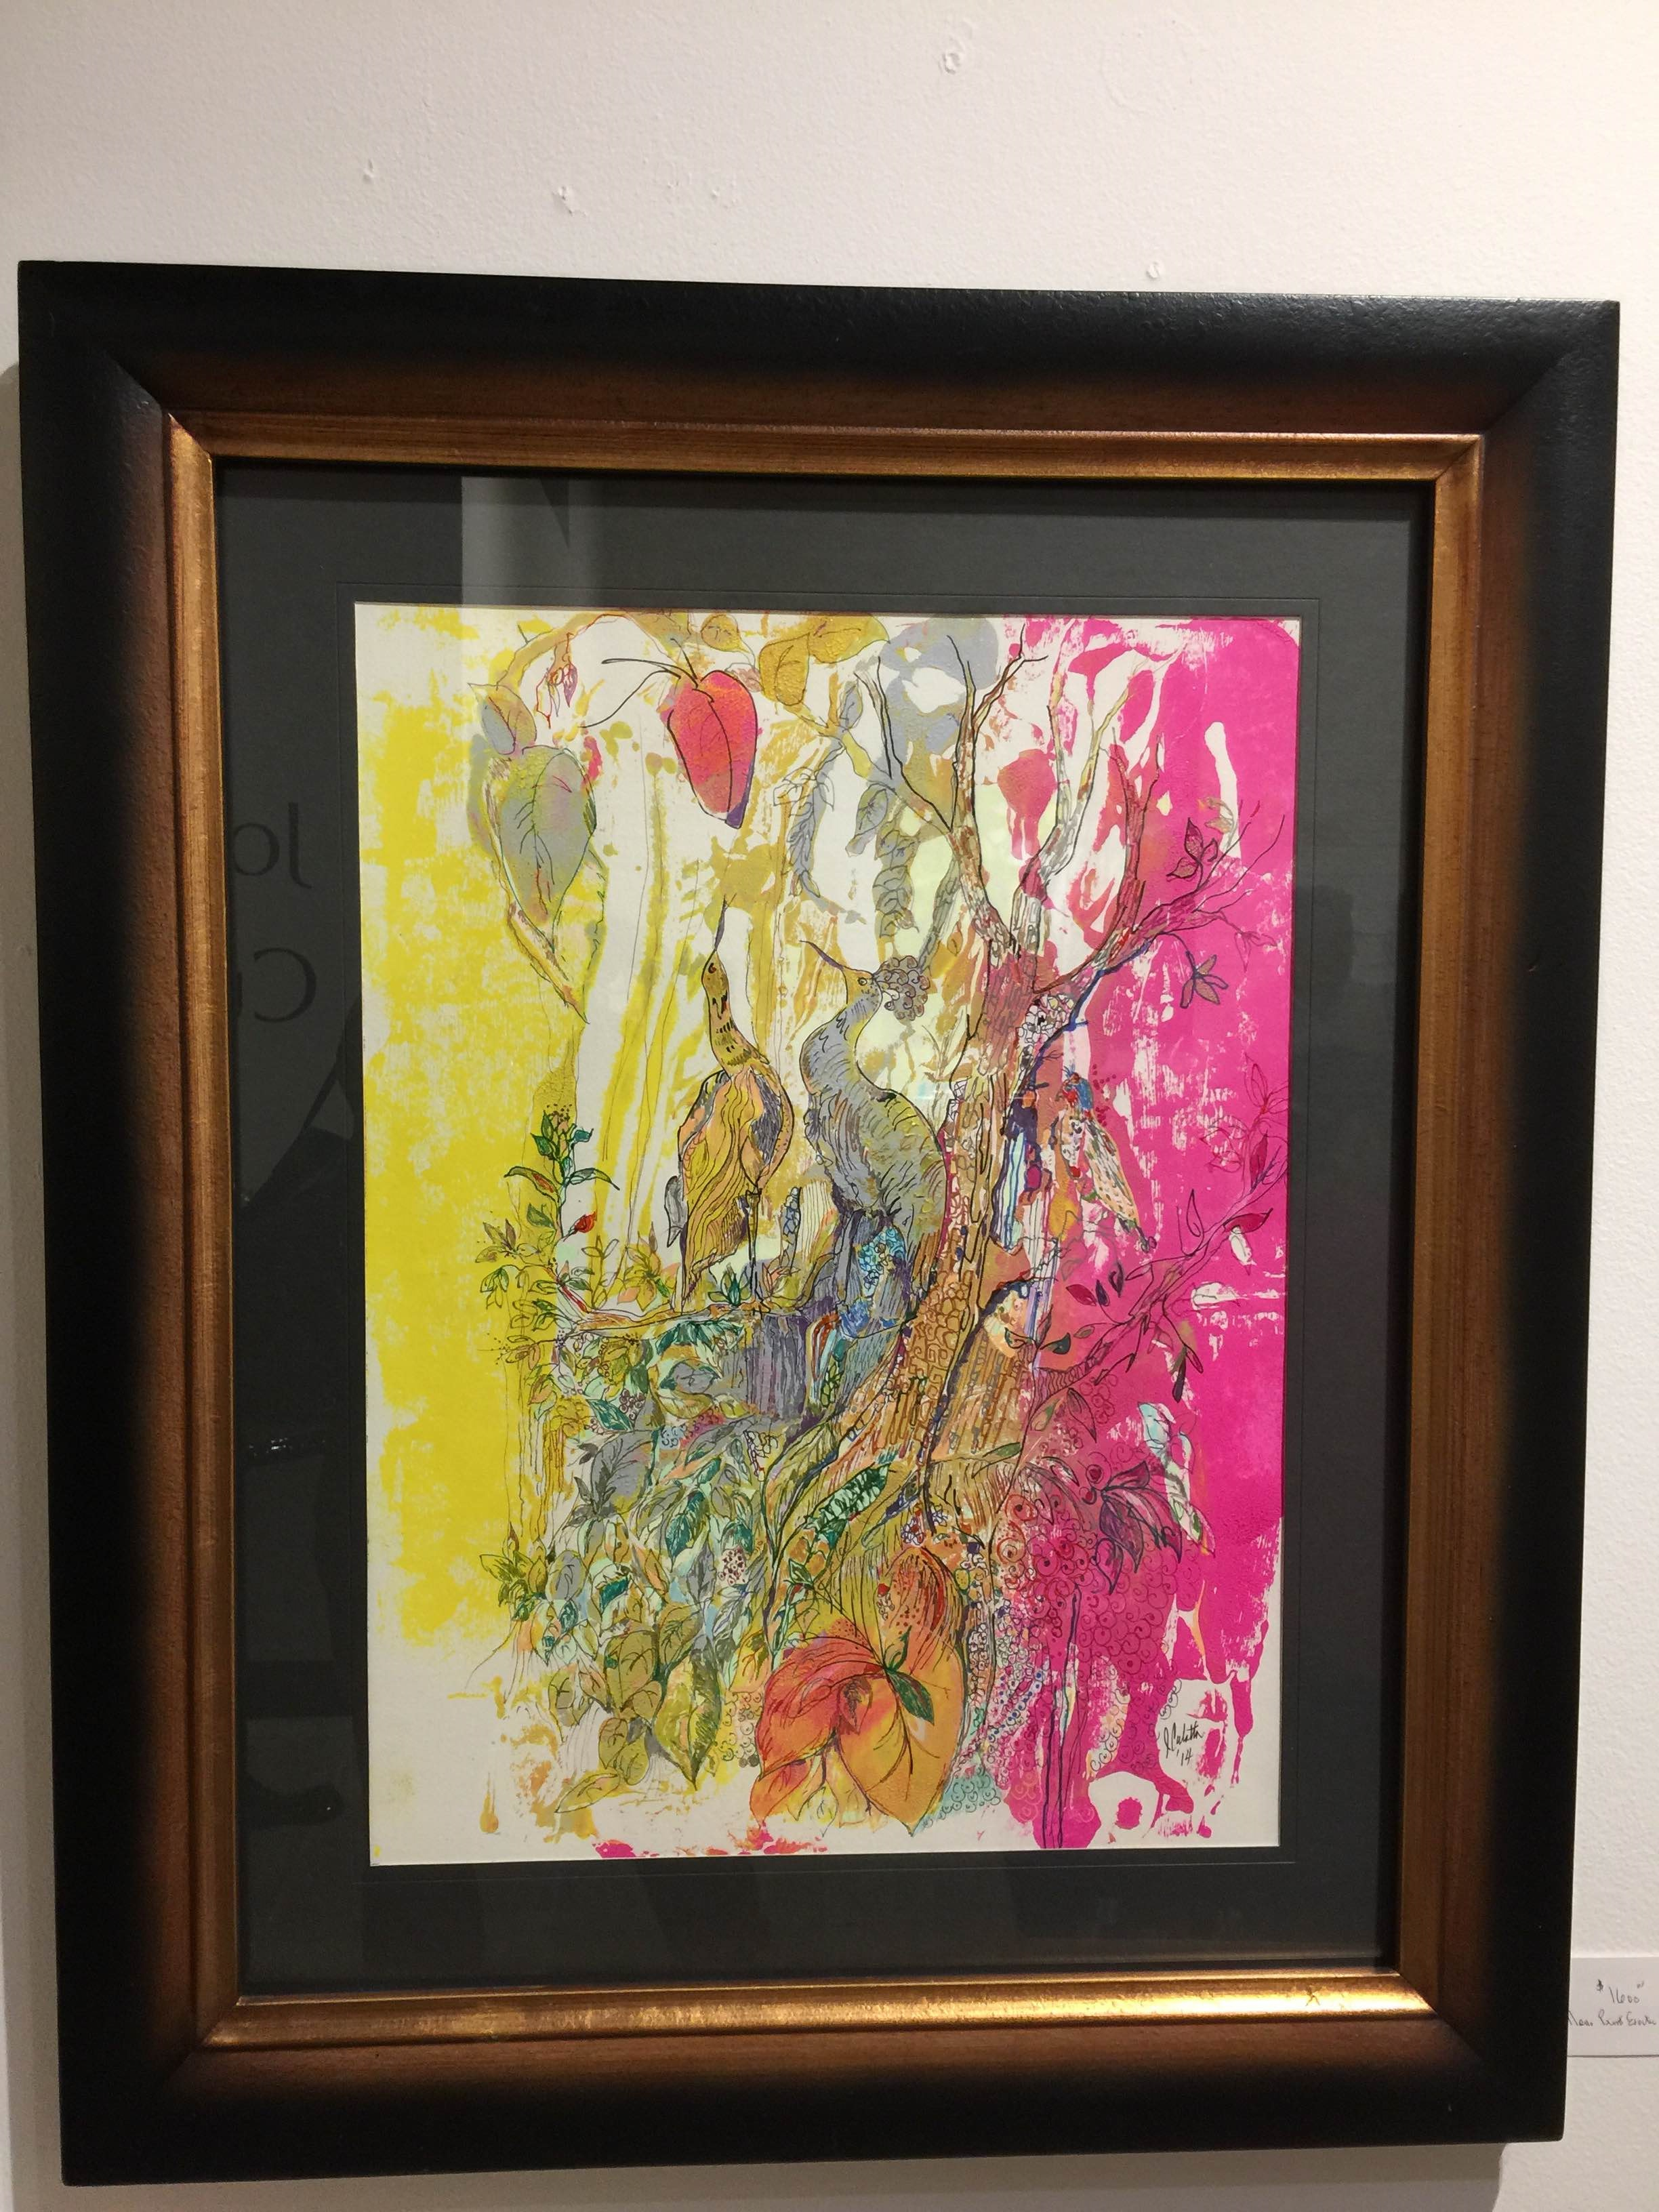 Watercolor art galleries in houston - Artist Joseph Culotta Abstract Art Presented By The Gallery Girls Shown At Swank Interiors Houston Tx